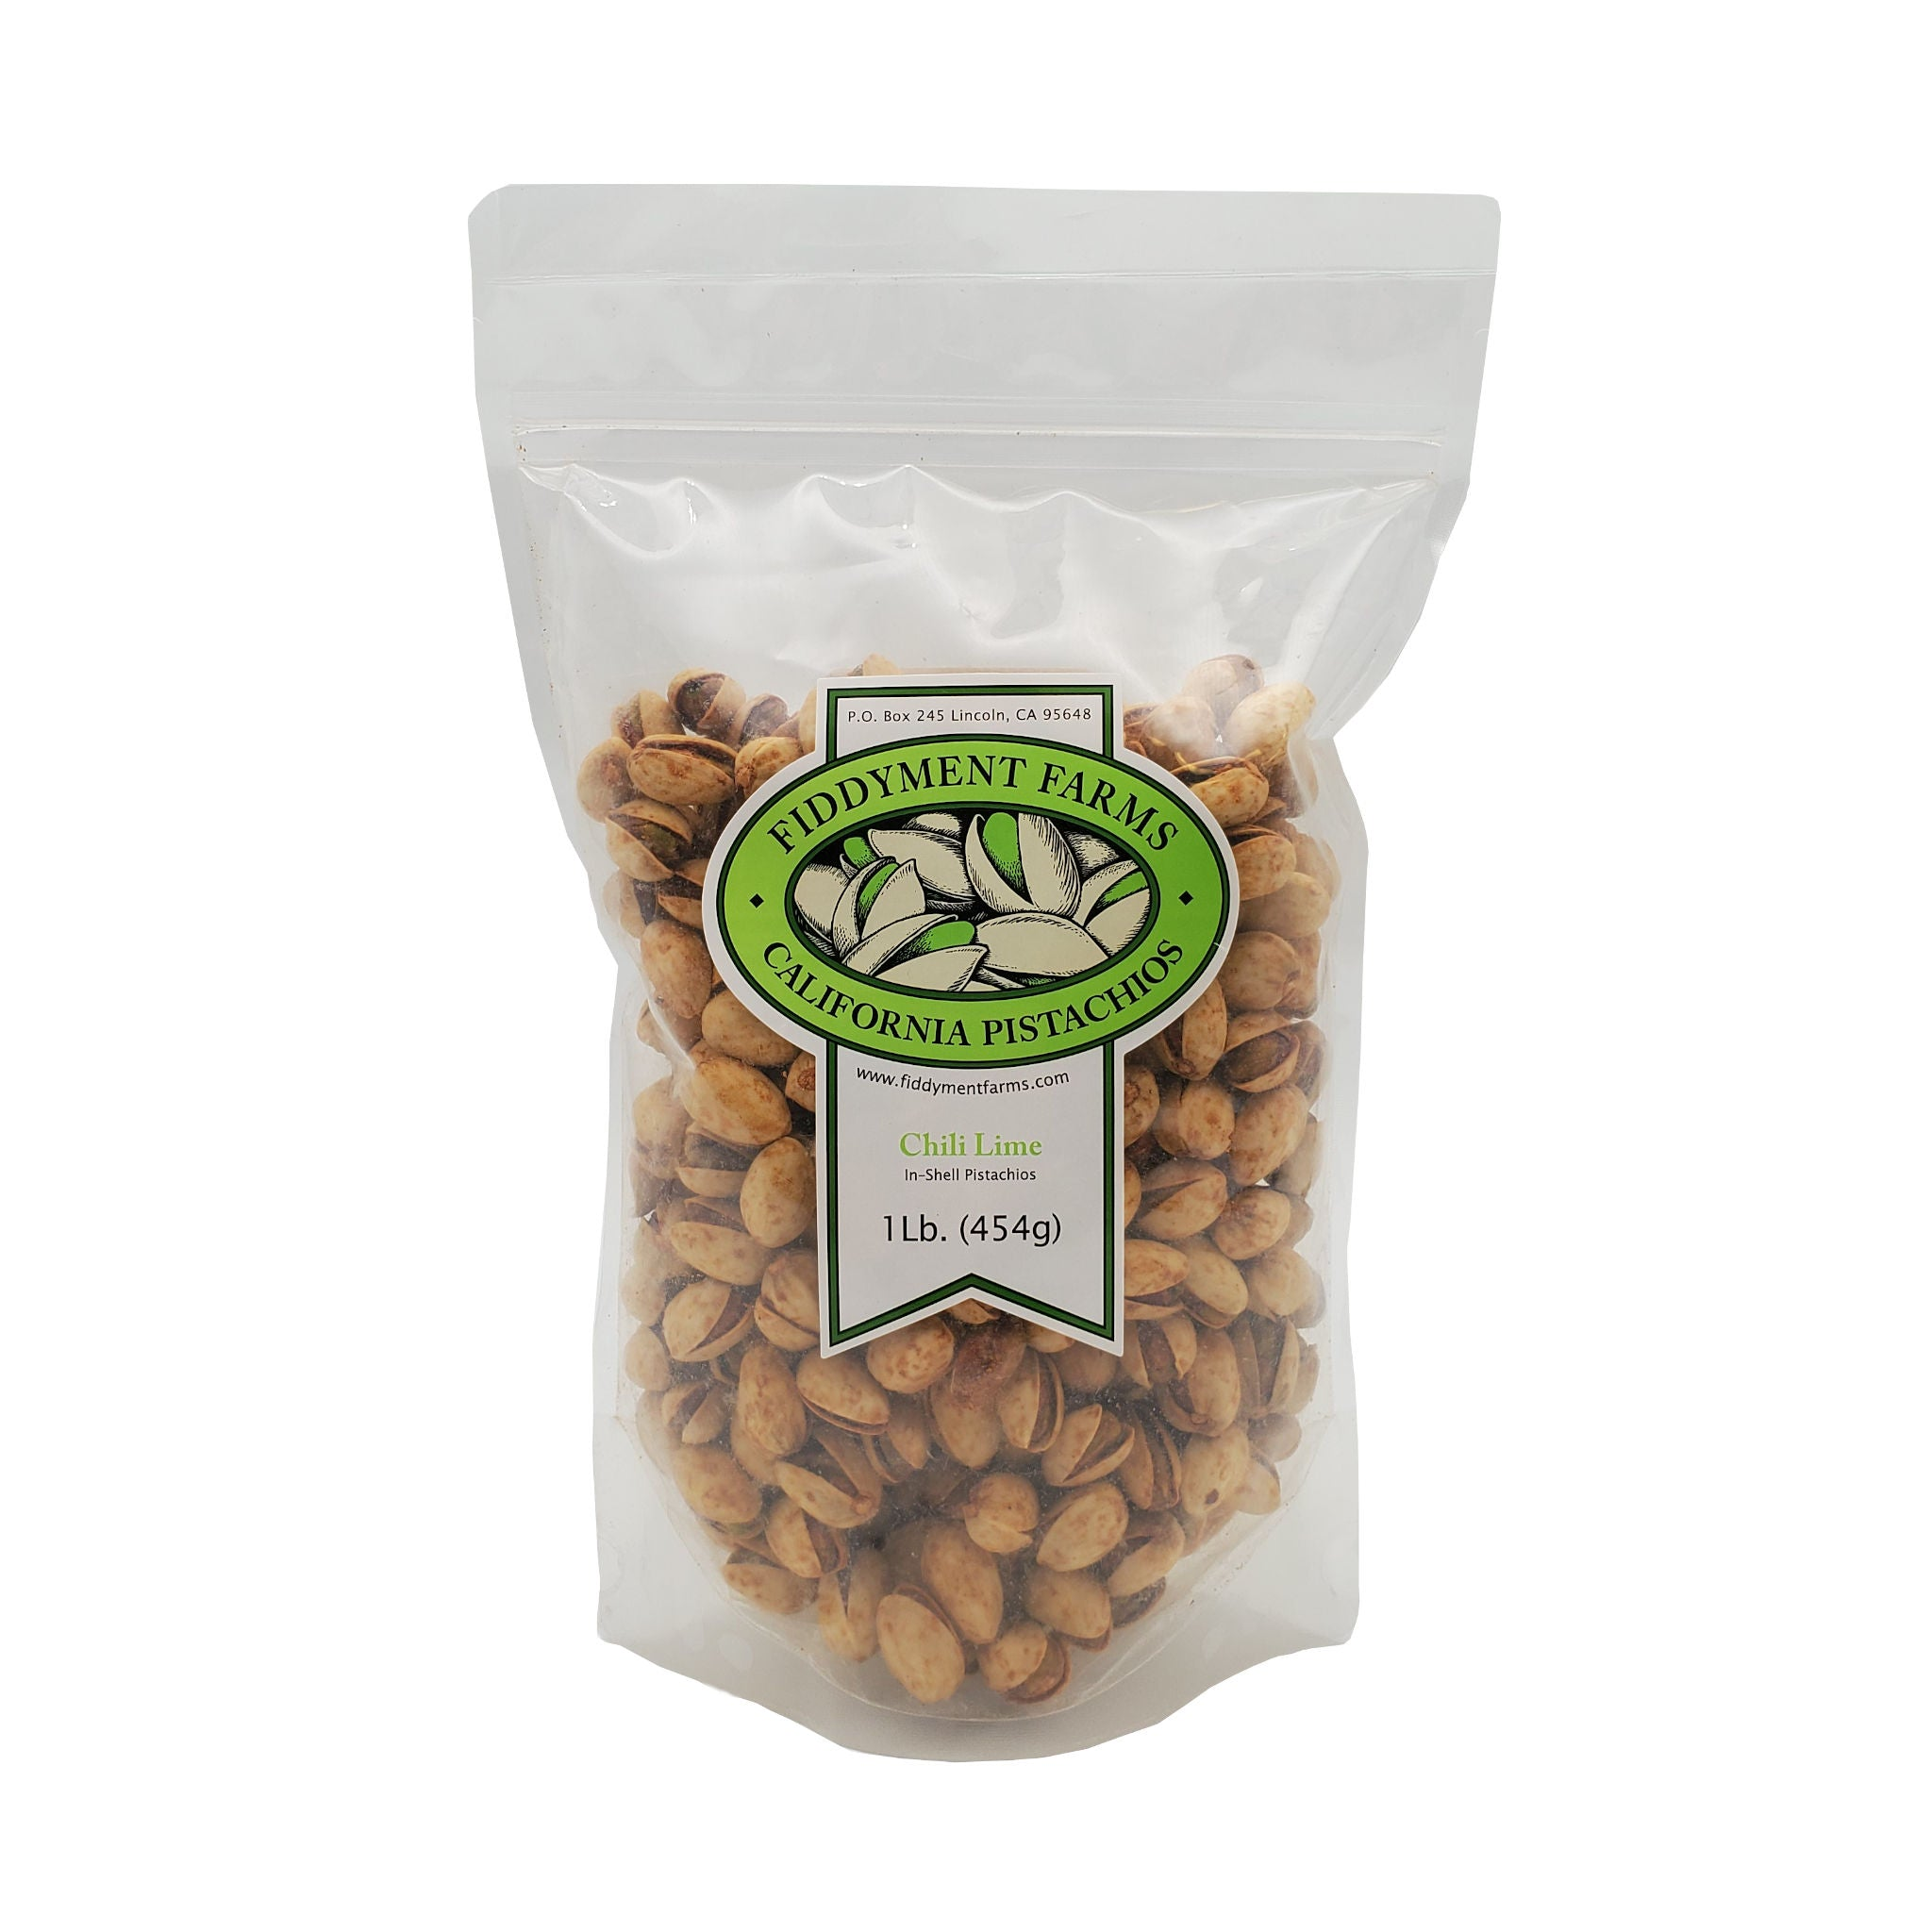 Chili Lime Pistachios in 1 lb bag